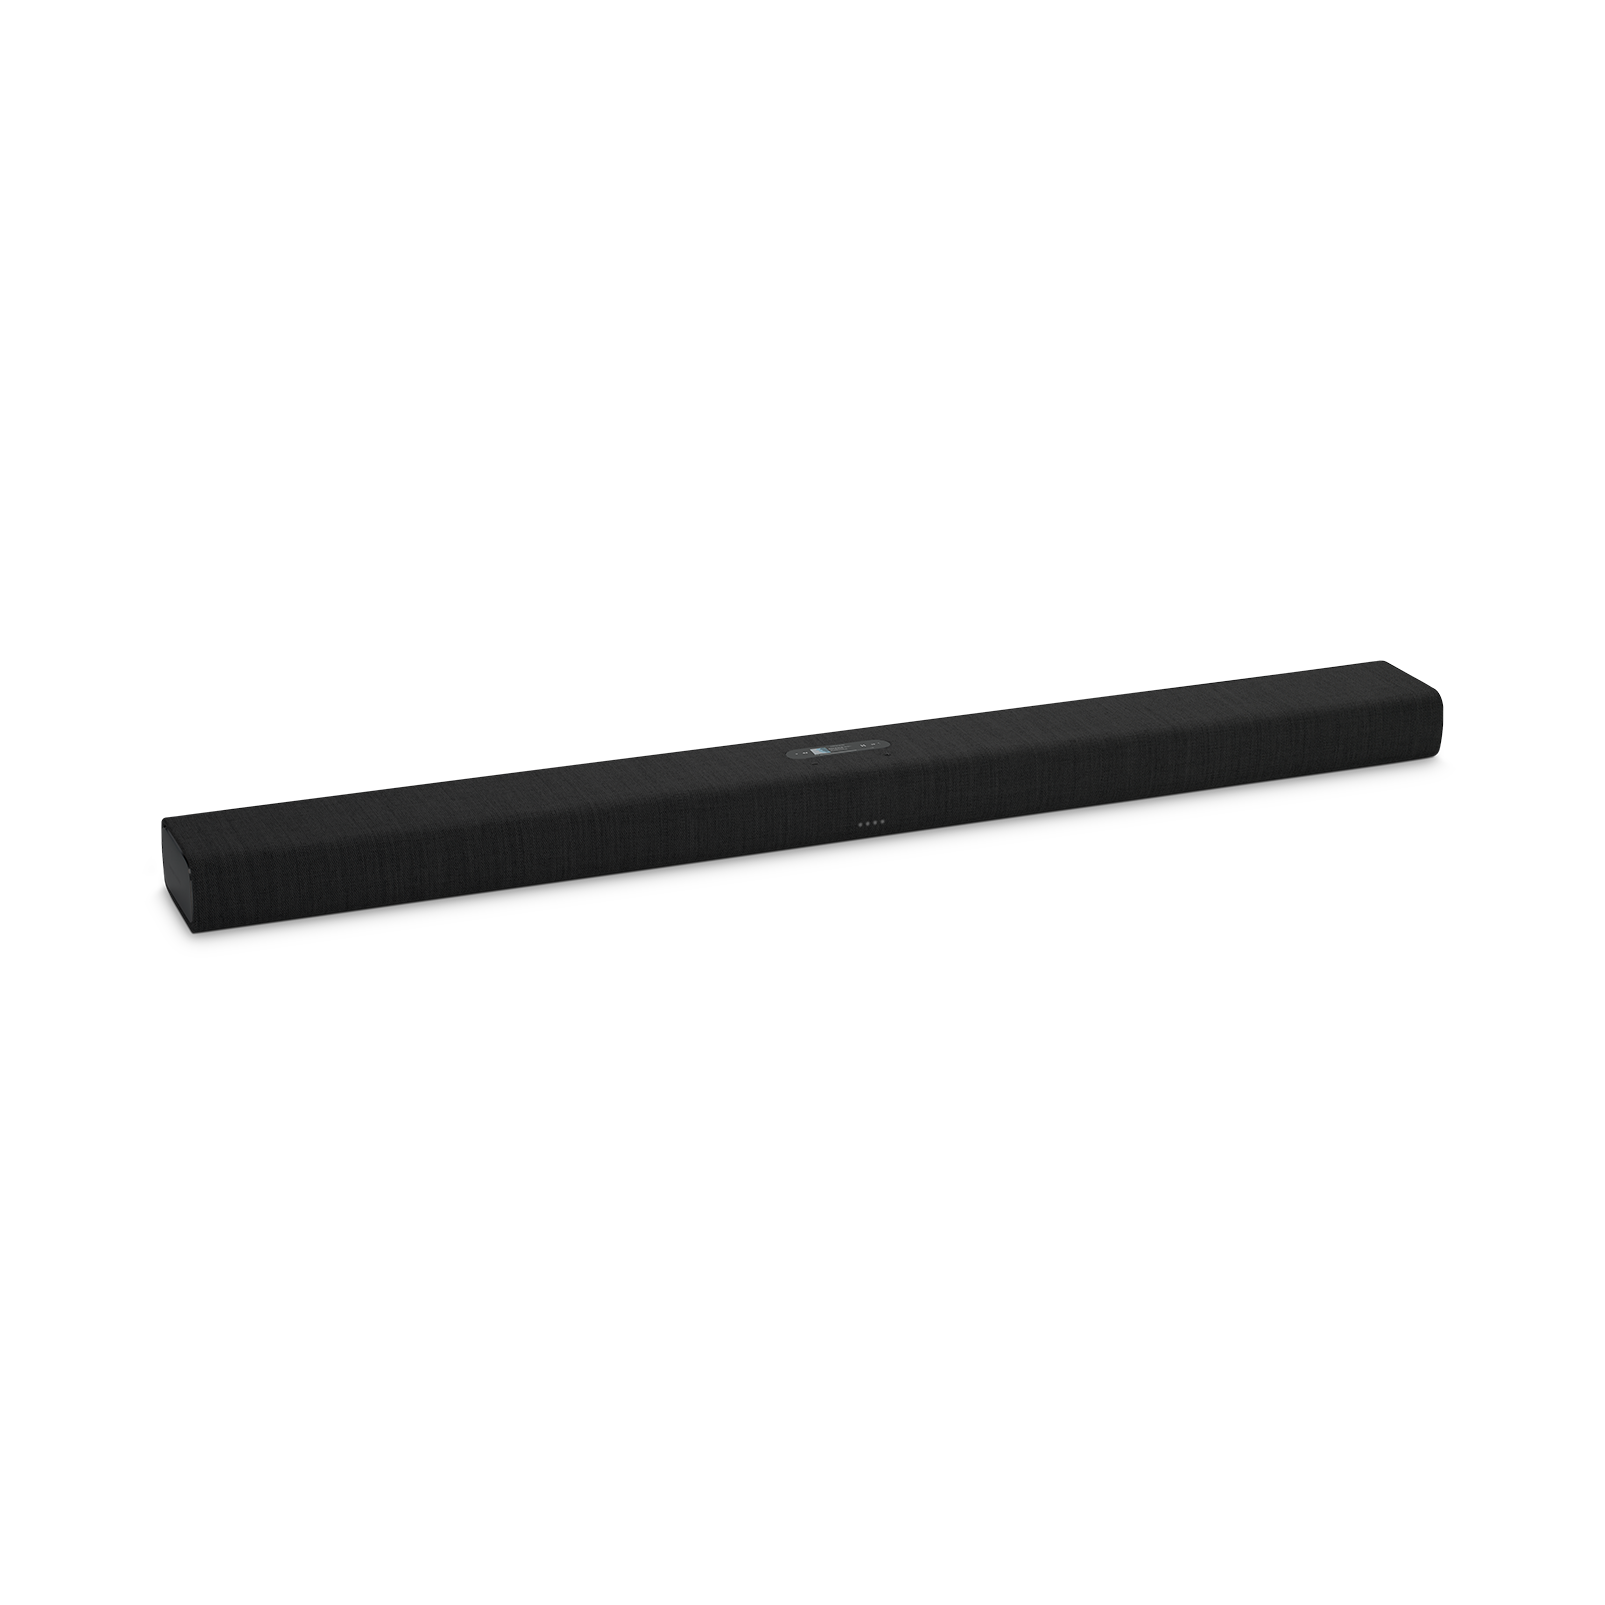 Harman Kardon Citation Bar - Black - The smartest soundbar for movies and music - Hero